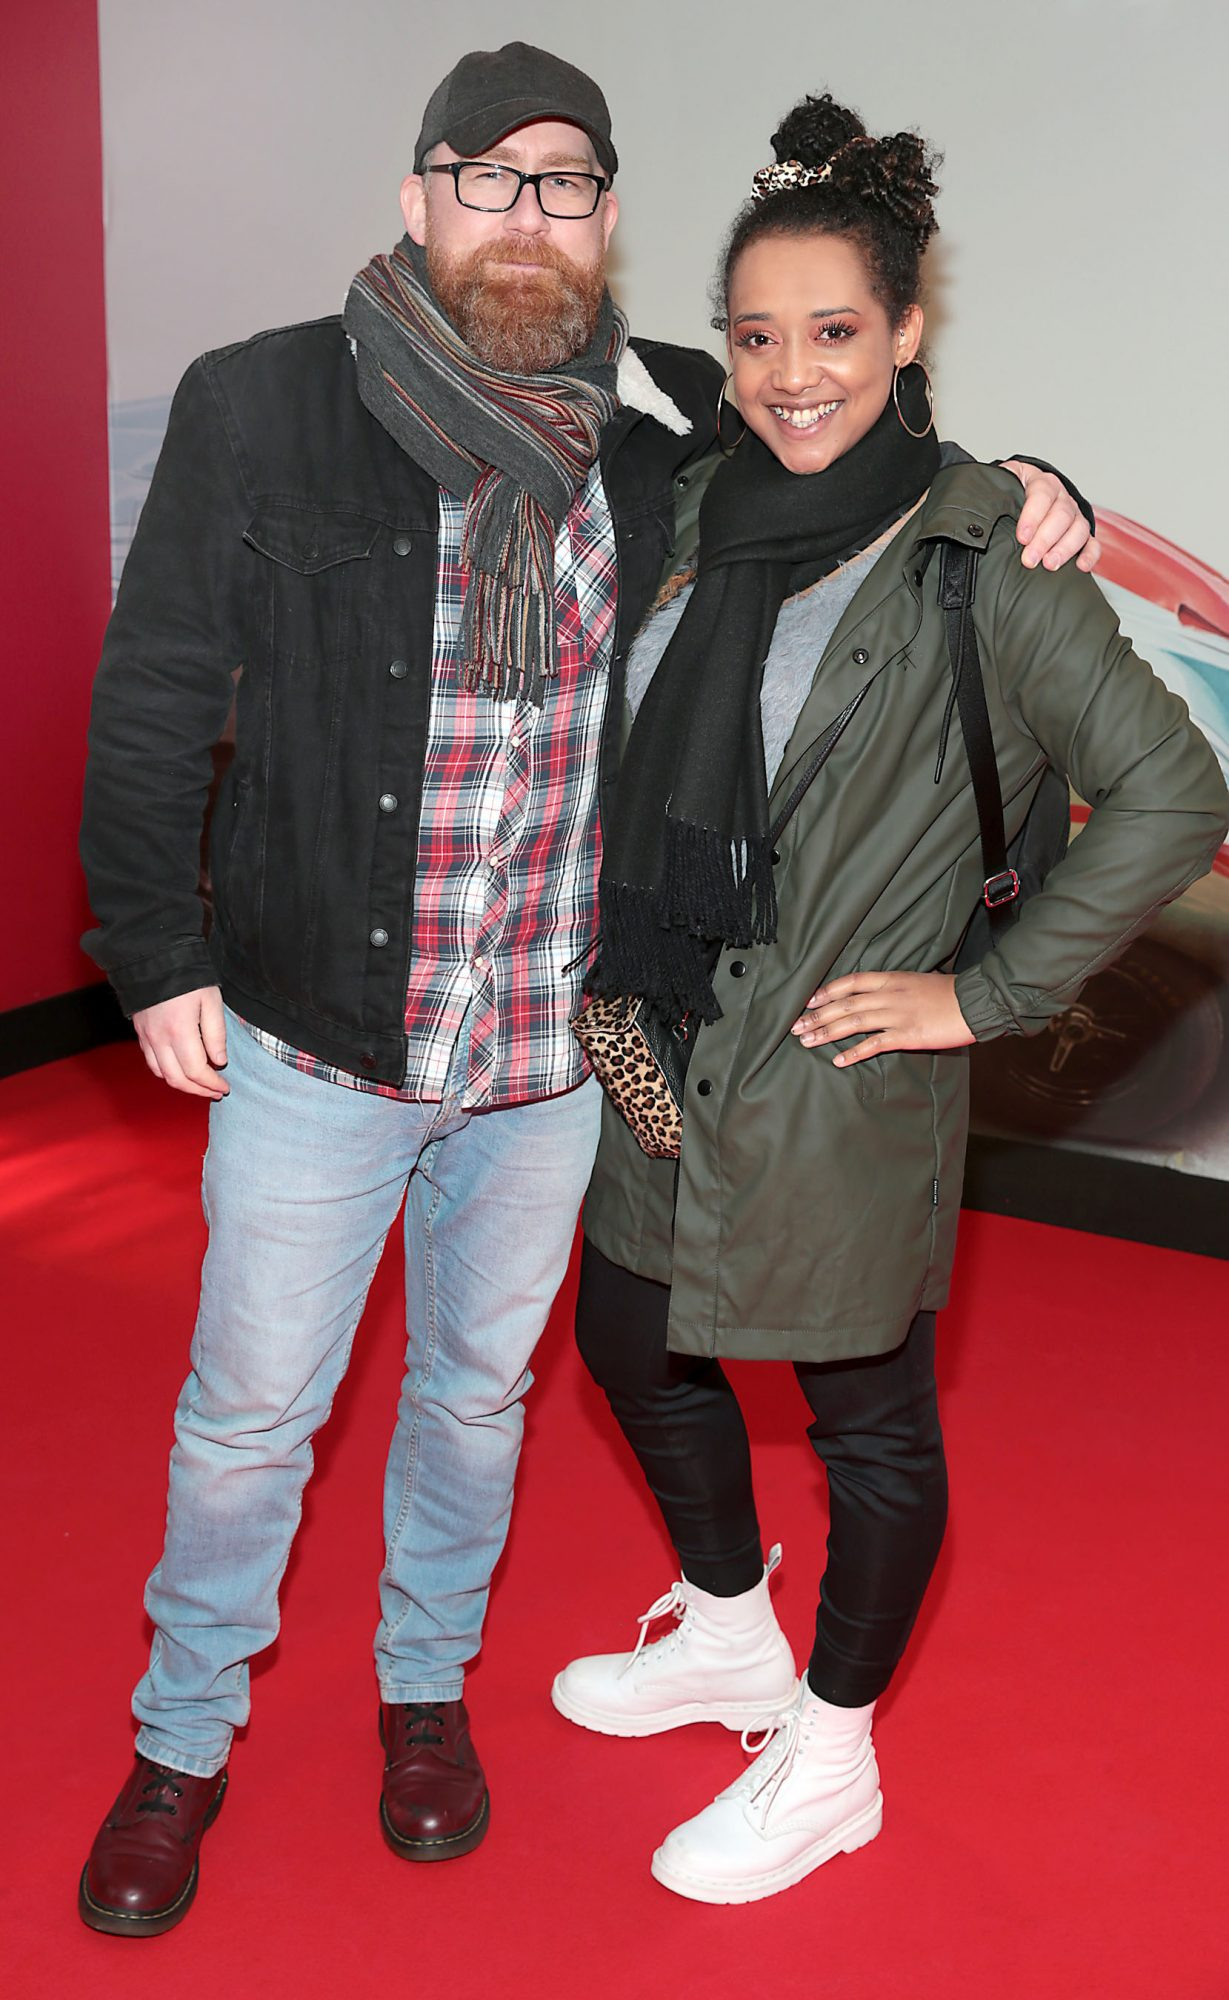 Michael Walsh and Elvira Oredein pictured at the special preview screening of Le Mans '66 at Cineworld, Dublin. Photo: Brian McEvoy.